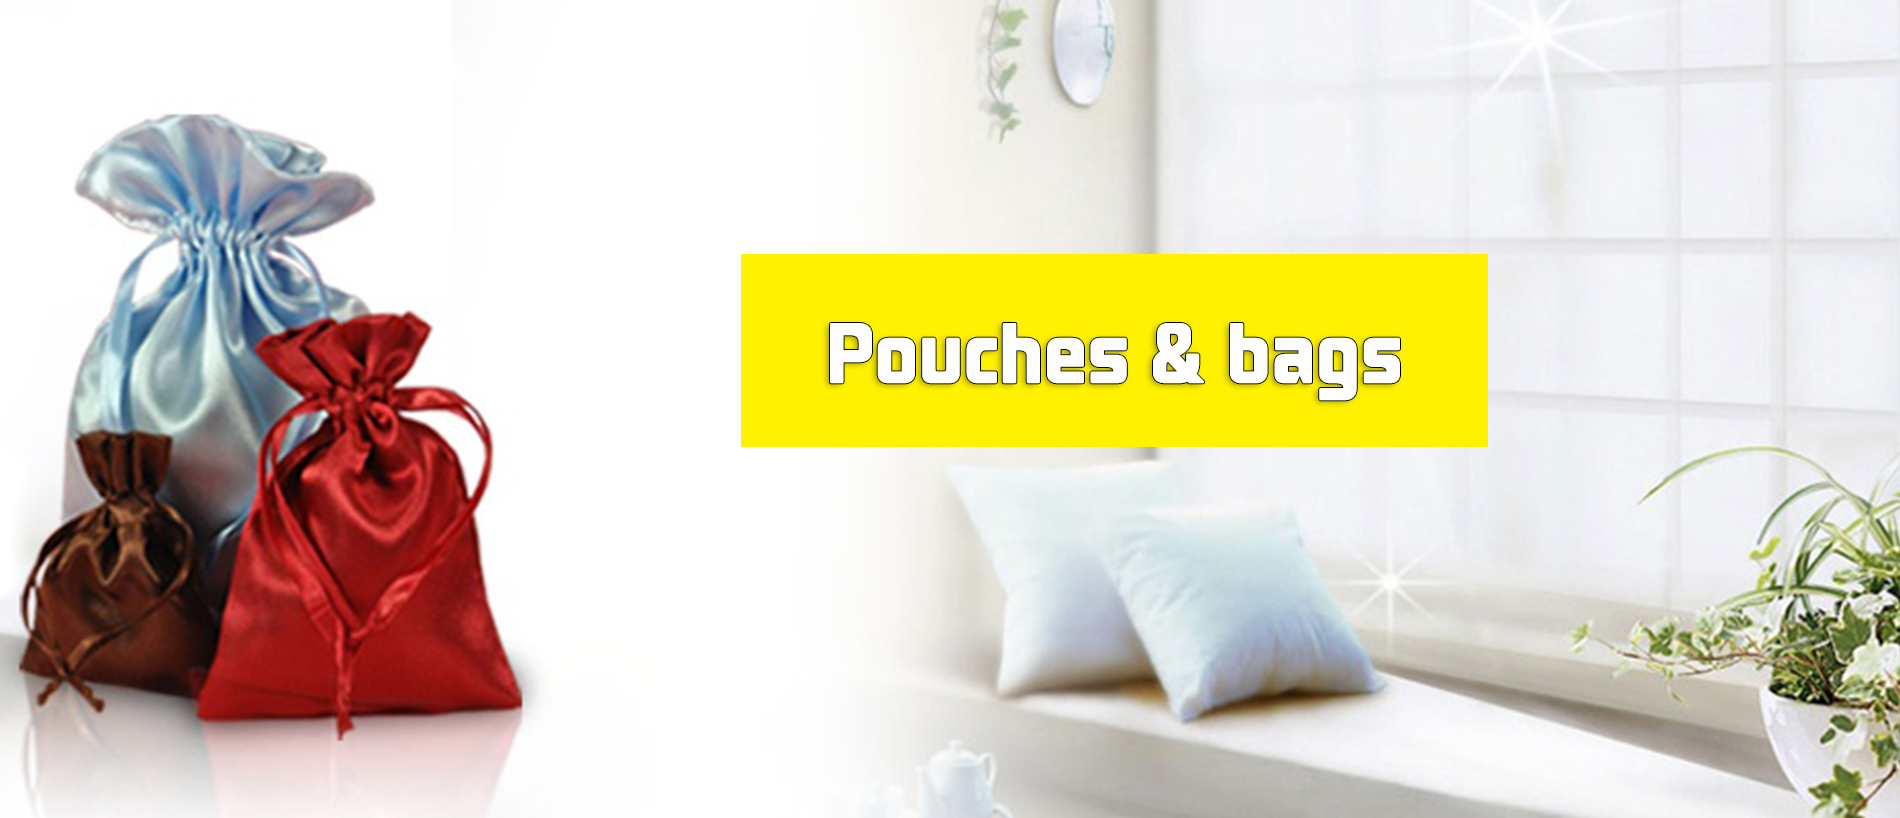 pouches bags 1